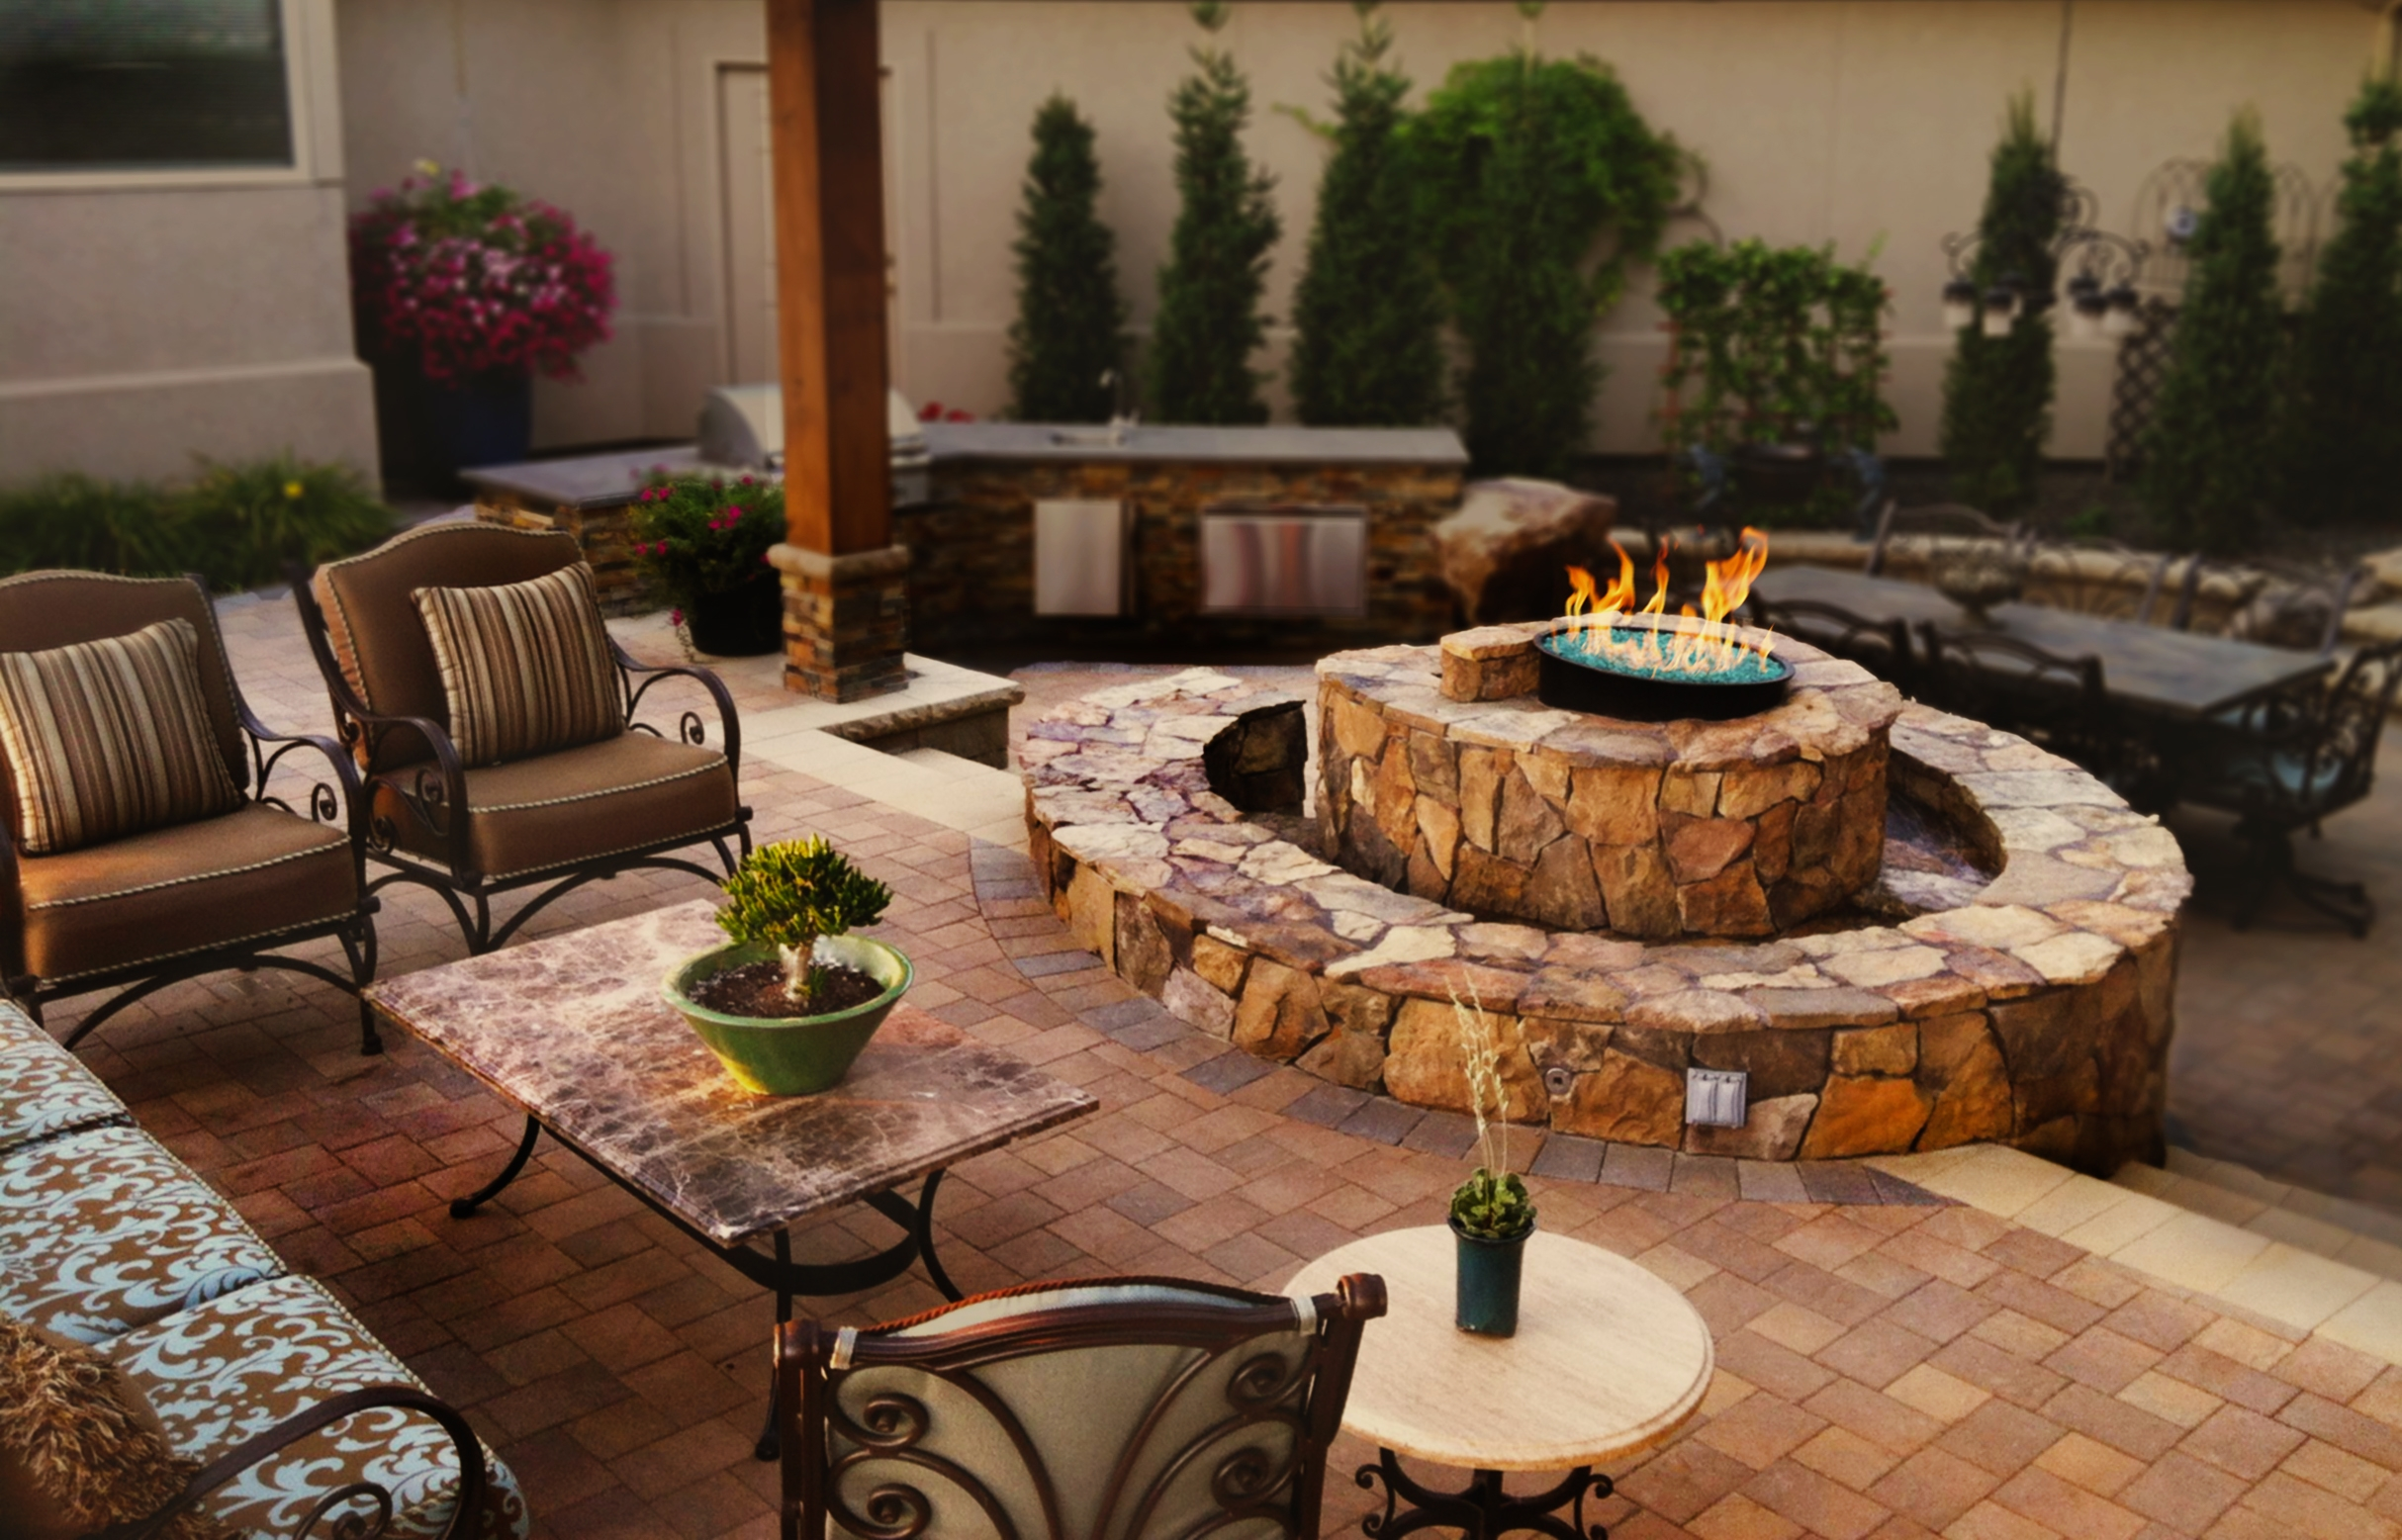 Sitting Area with Fire/Water Feature | The Garden Artist Boise, ID